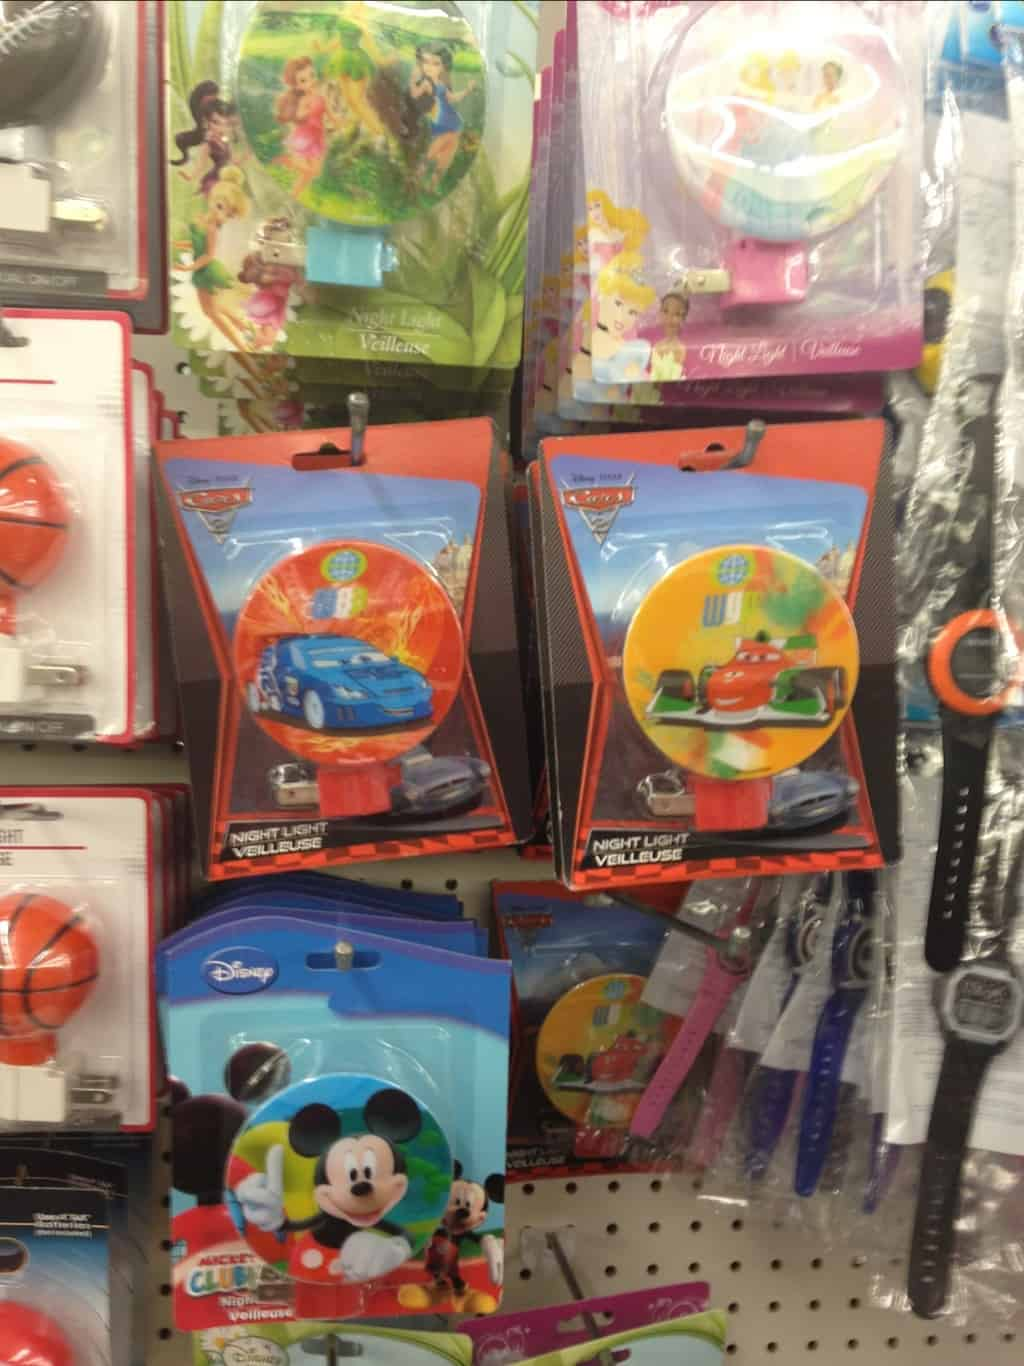 Prepping for a Disney trip at The Dollar Tree from @WDWPrepSchool